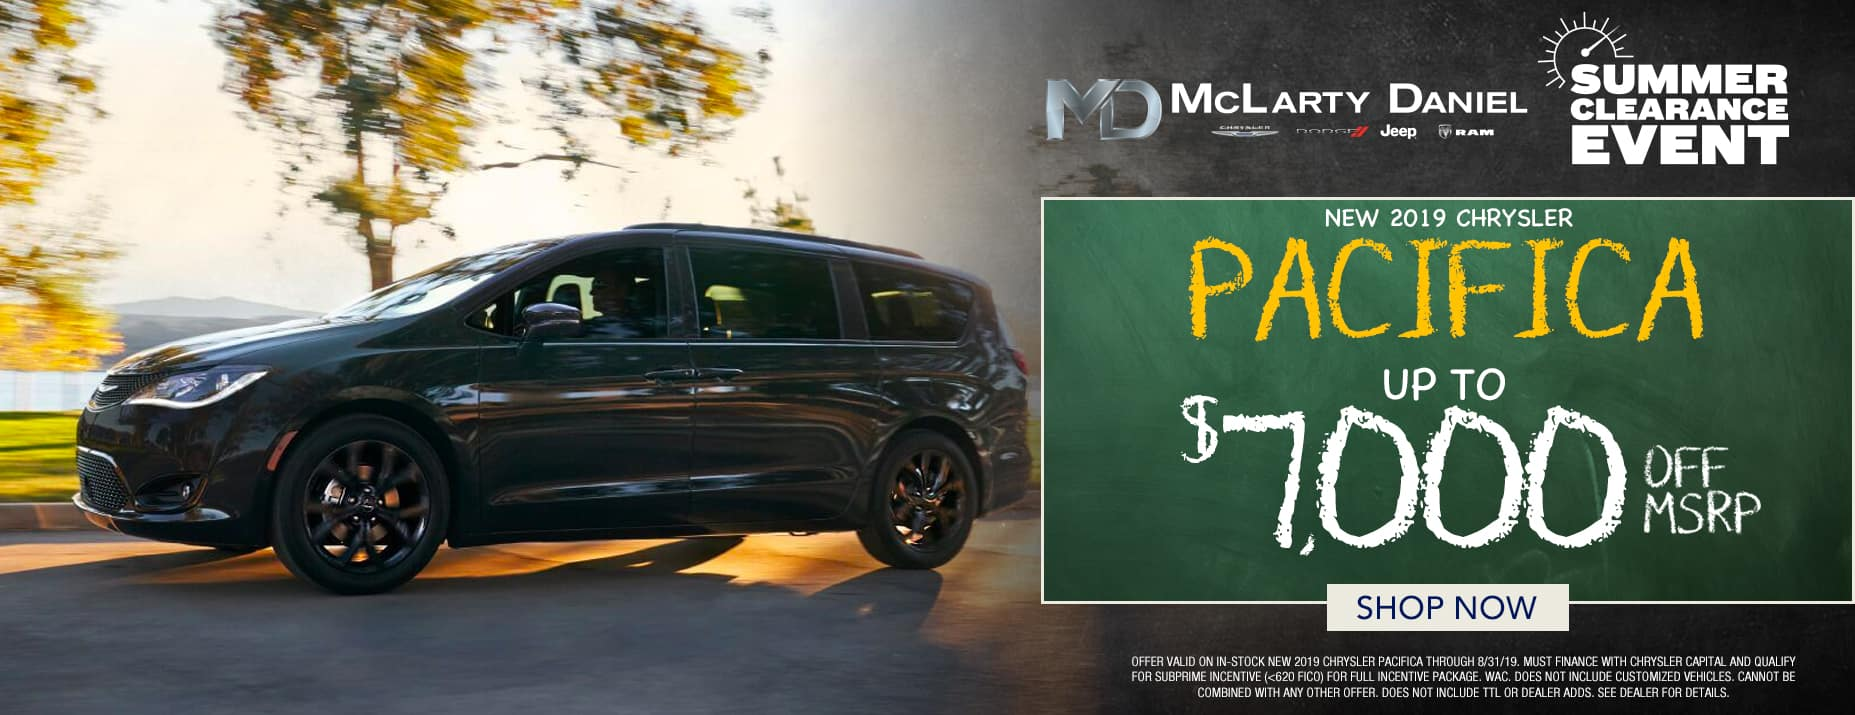 2019 Chrysler Pacifica $8,000 off msrp